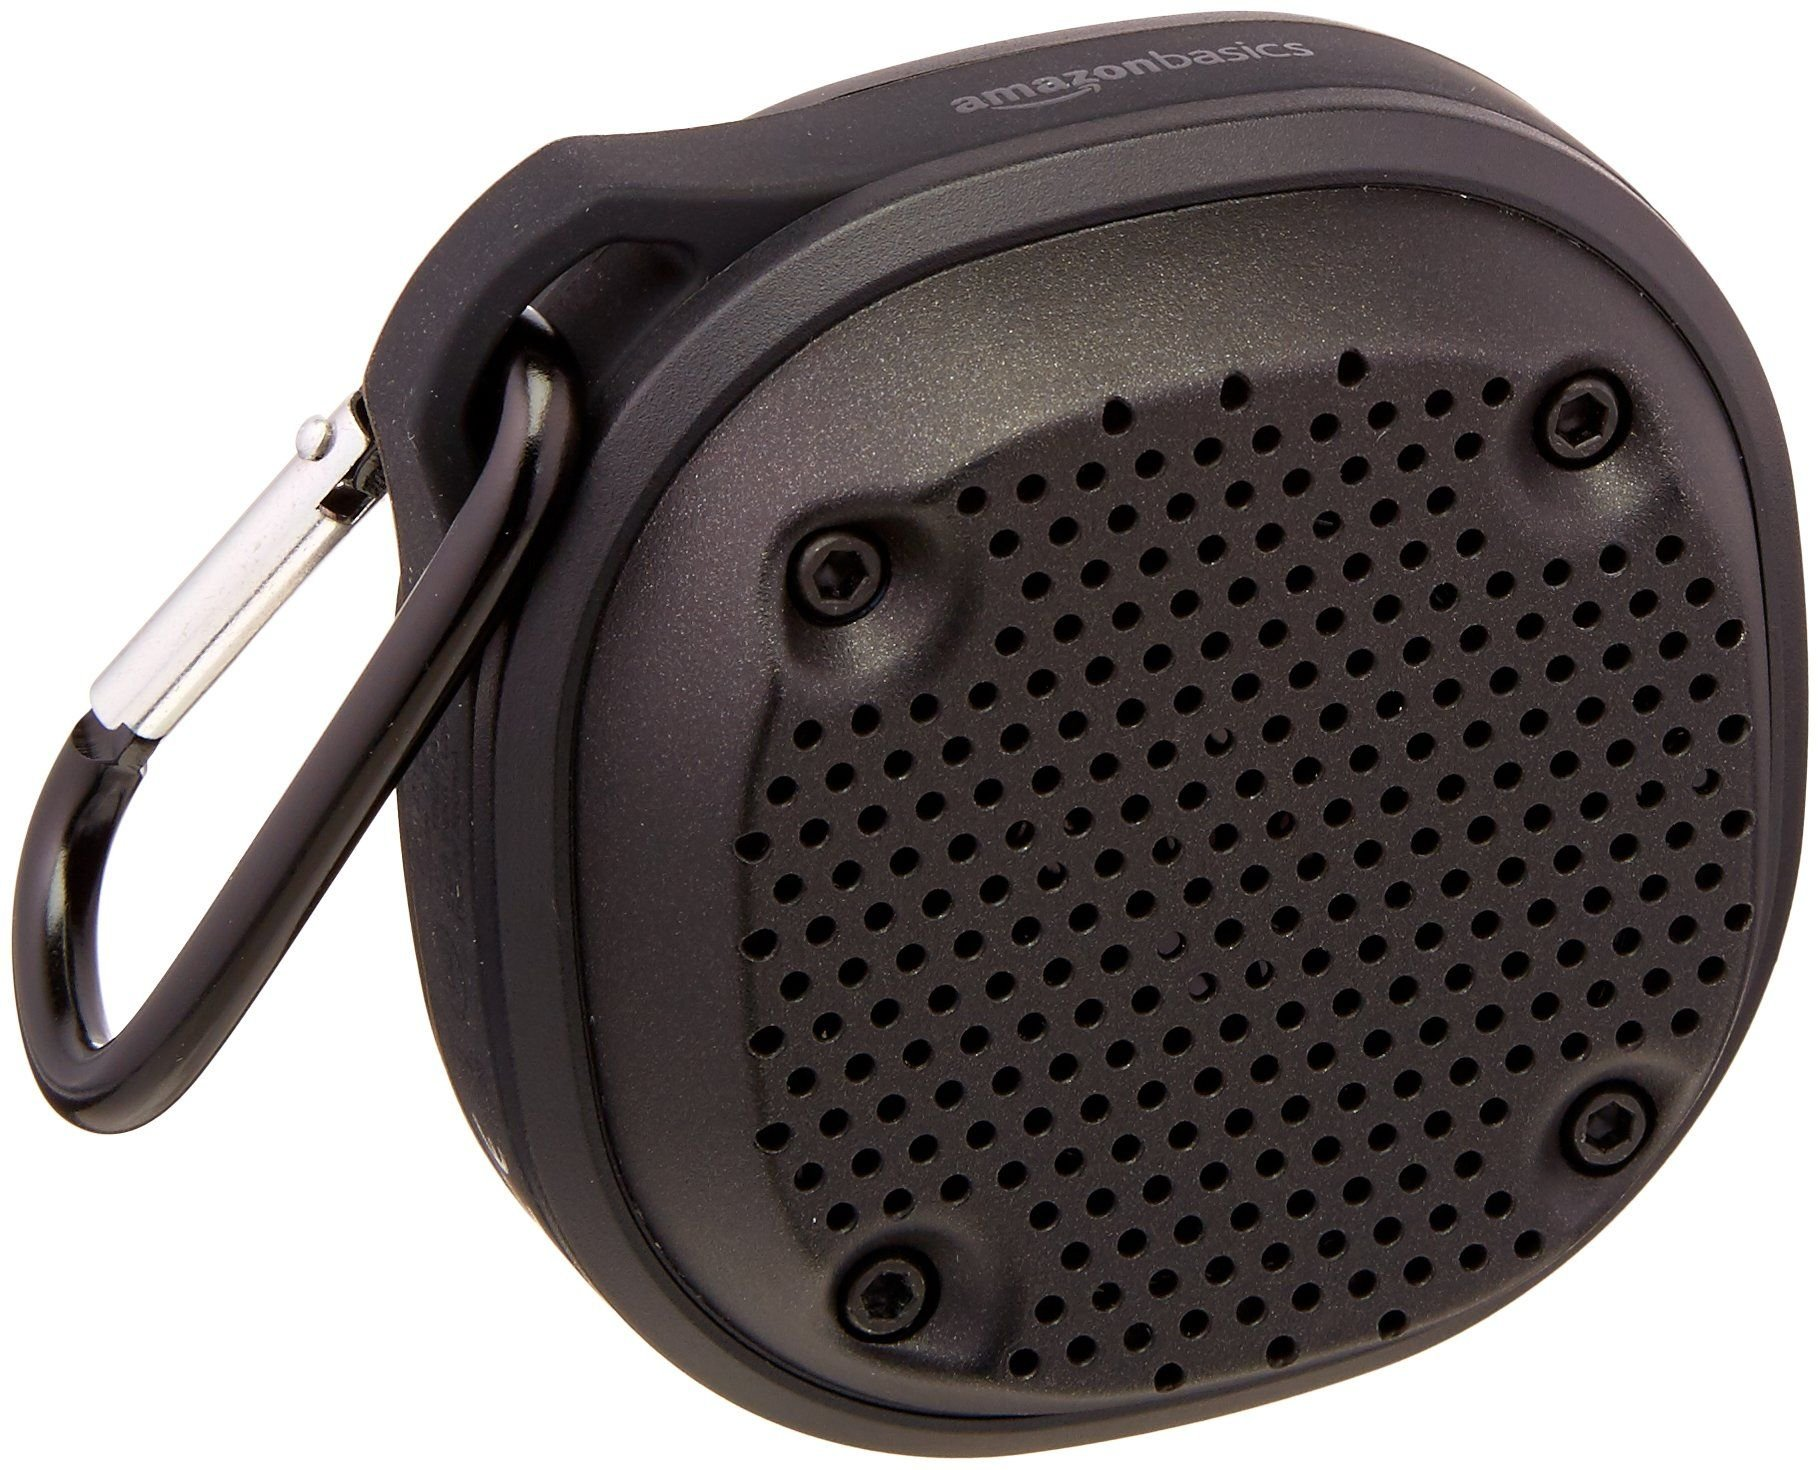 AmazonBasics Shockproof and Waterproof Bluetooth Wireless Mini Speaker by AmazonBasics (Image #1)